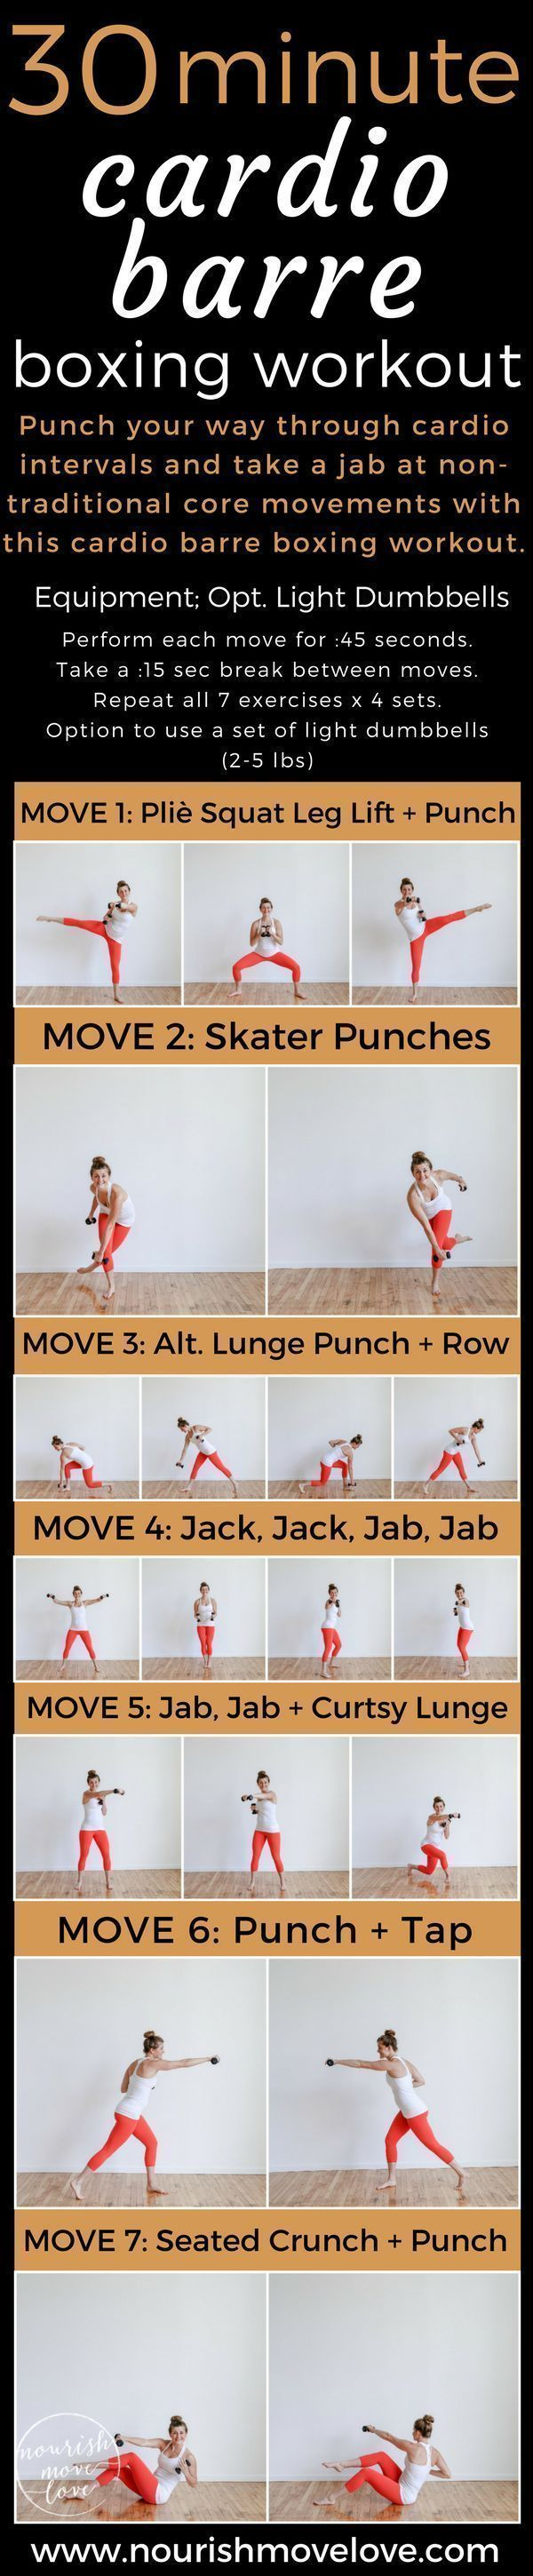 30-Minute Cardio Barre Boxing Workout #cardiobarre 30-Minute Cardio Barre Boxing Workout. Punch your way through this 30-minute cardio barre boxing workout pairing pliè squats with boxing cardio intervals and non-traditional core movements. | www.nourishmovelo... #cardiobarre 30-Minute Cardio Barre Boxing Workout #cardiobarre 30-Minute Cardio Barre Boxing Workout. Punch your way through this 30-minute cardio barre boxing workout pairing pliè squats with boxing cardio intervals and non-traditio #cardiobarre